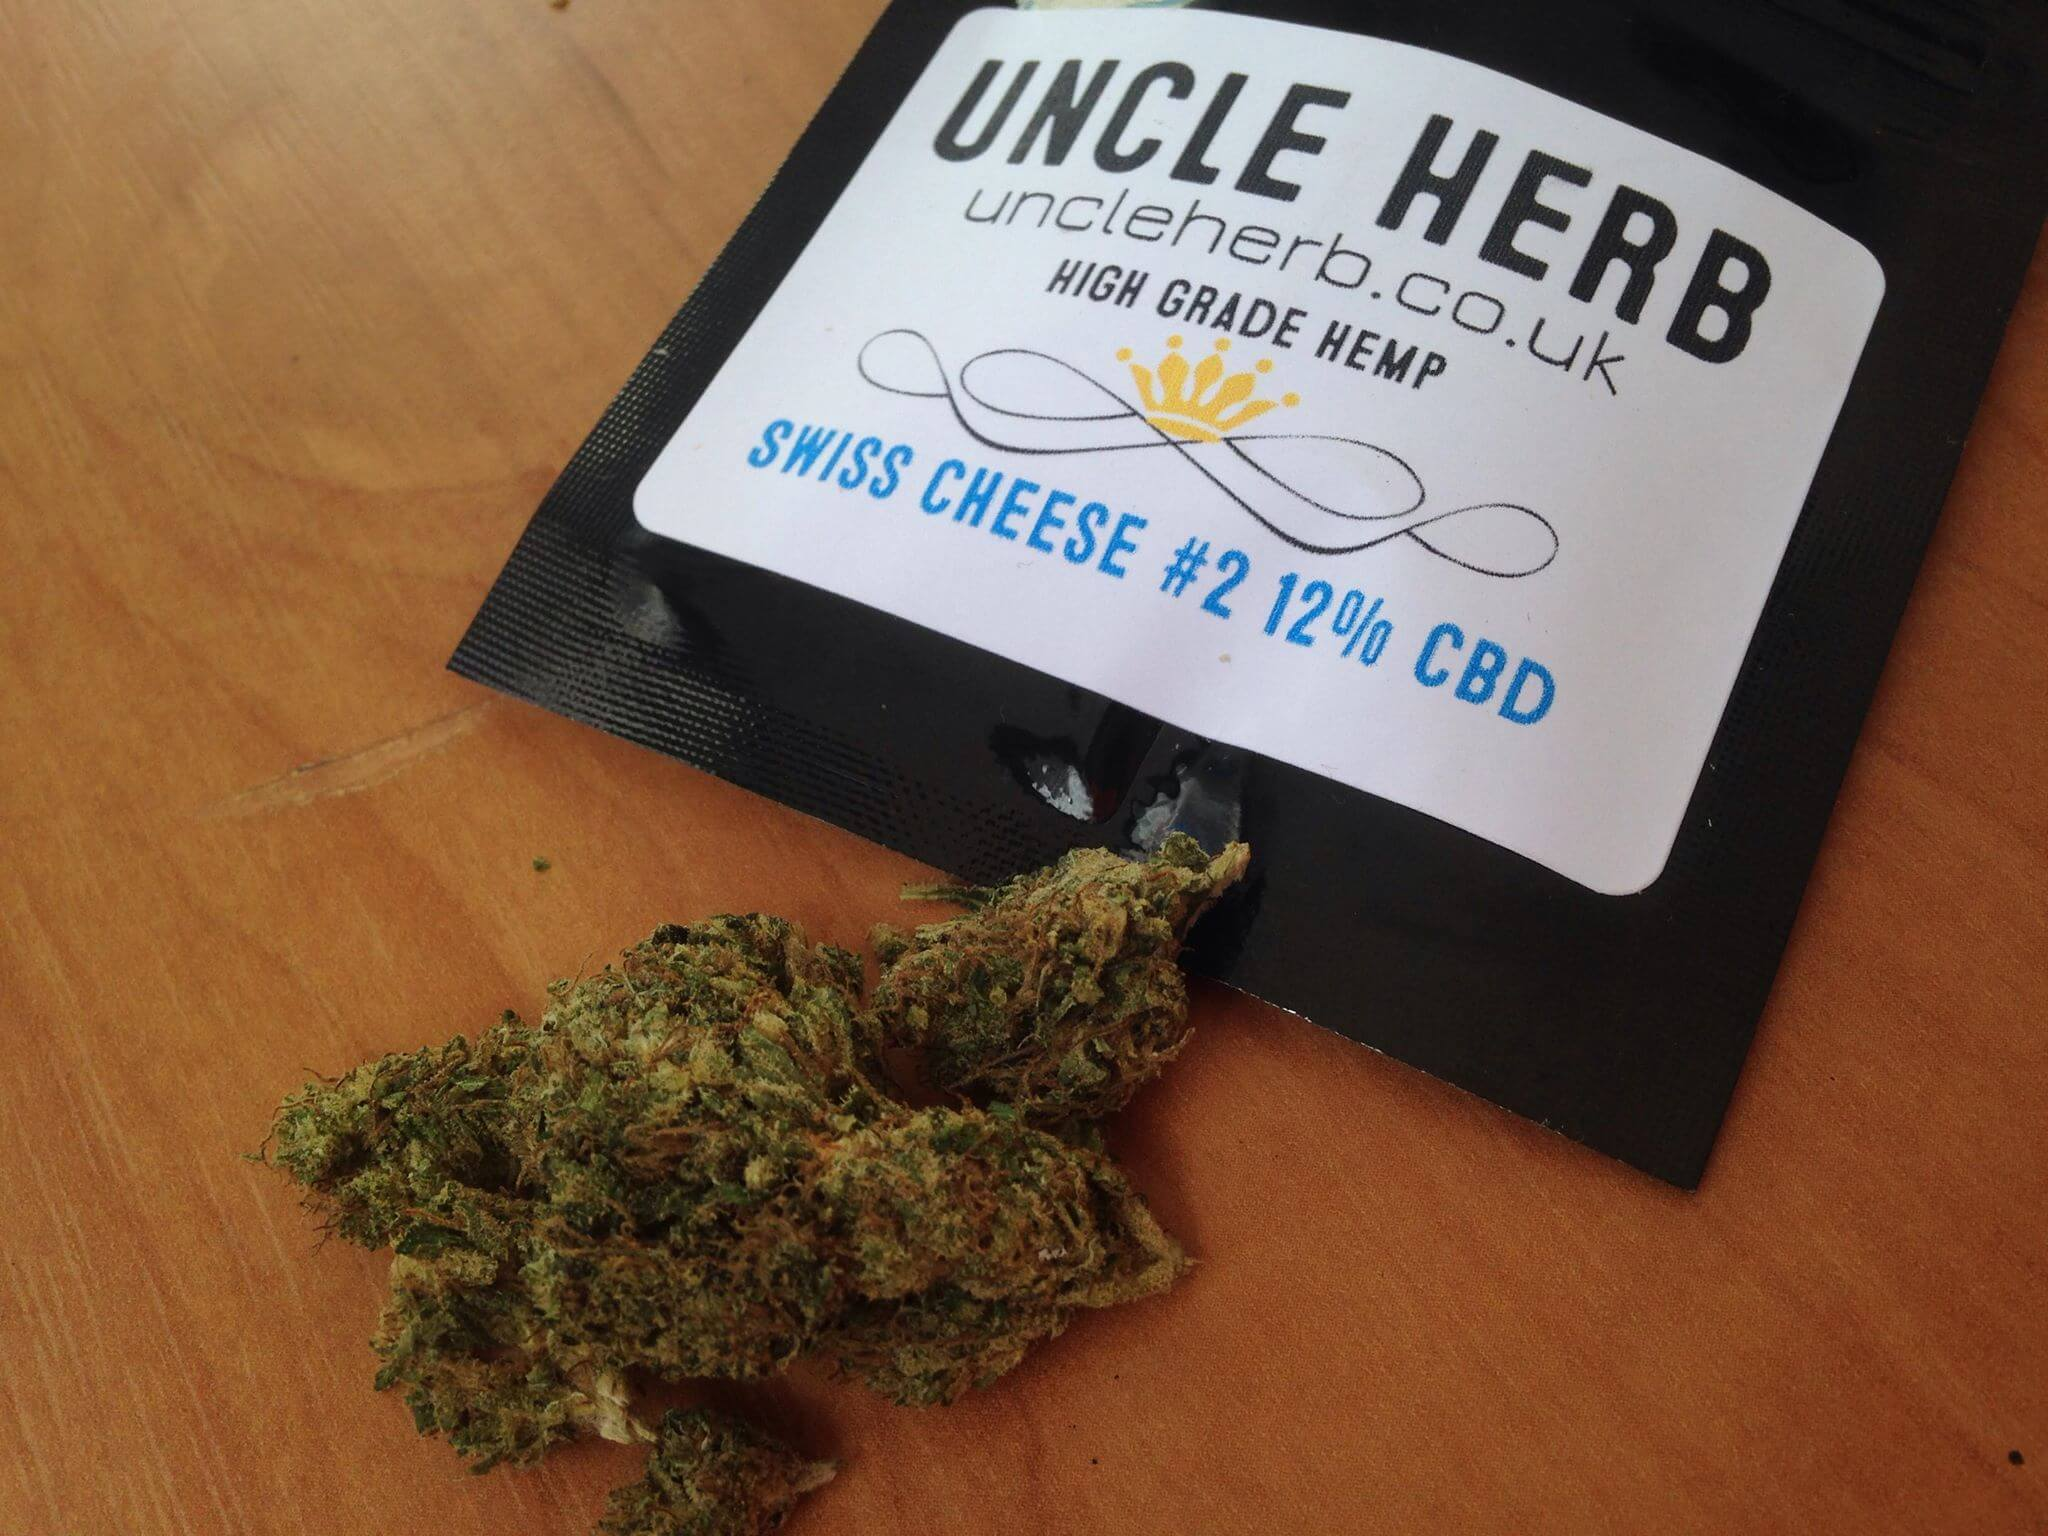 CBD Flower Strain Review: Swiss Cheese (12% CBD) #2 From Uncle Herb